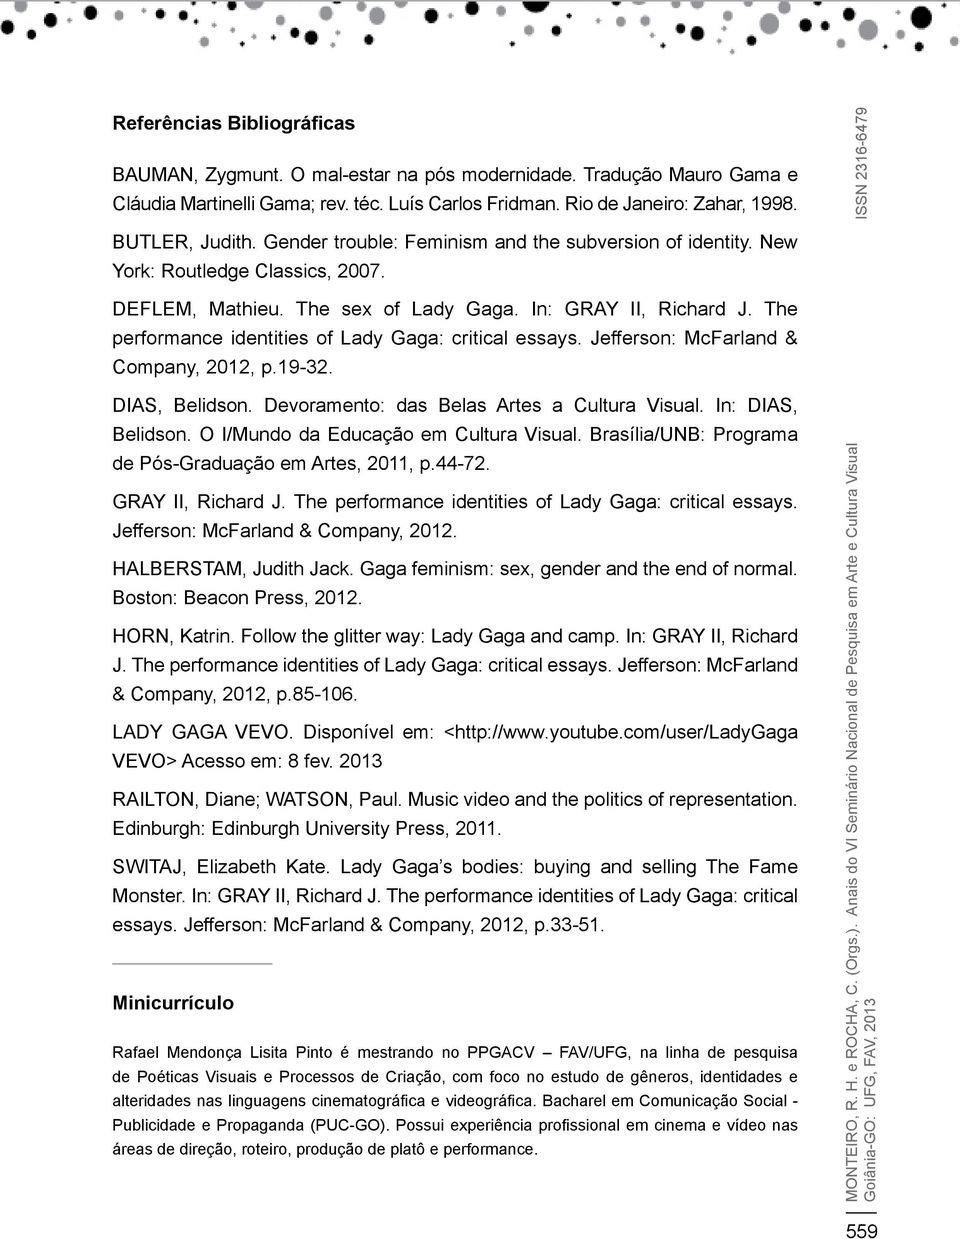 The performance identities of Lady Gaga: critical essays. Jefferson: McFarland & Company, 2012, p.19-32. DIAS, Belidson. Devoramento: das Belas Artes a Cultura Visual. In: DIAS, Belidson.